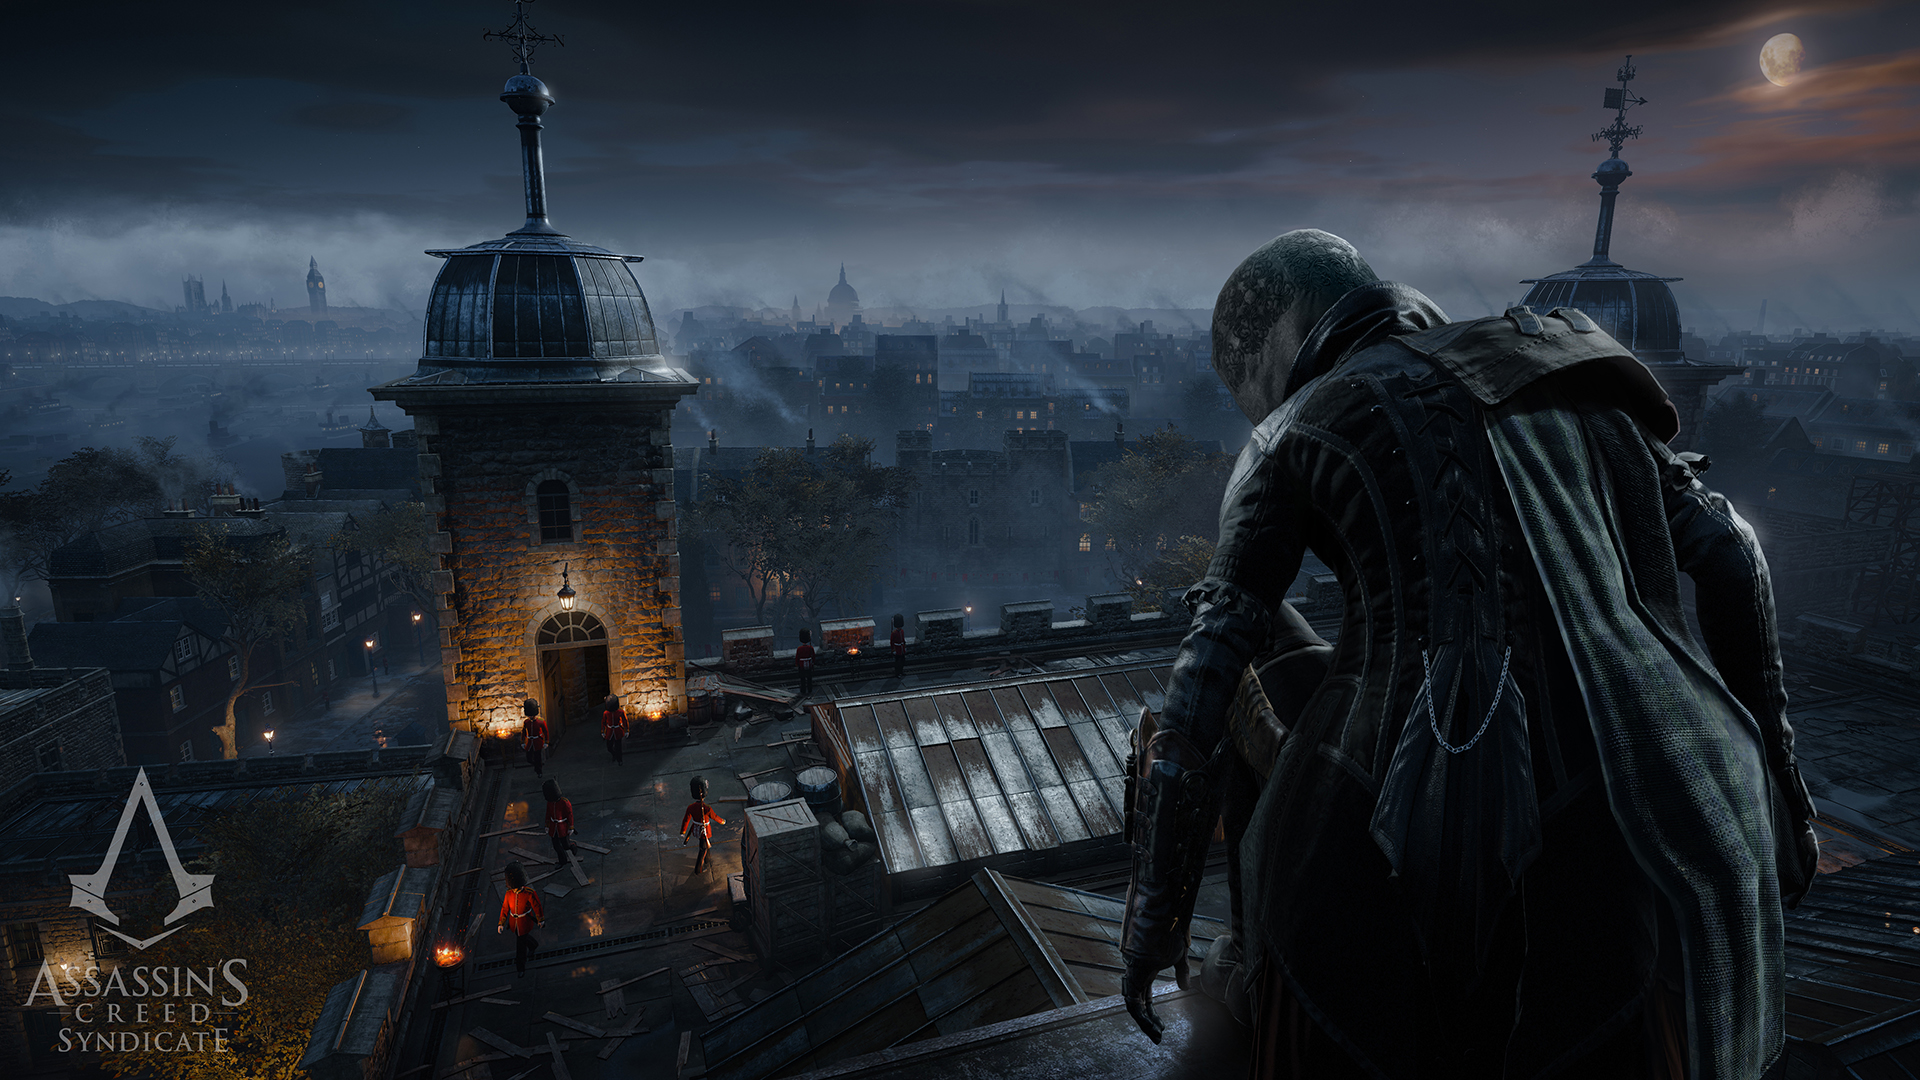 Assassins Creed Syndicate Secrets of London visual guide   VG247 1920x1080